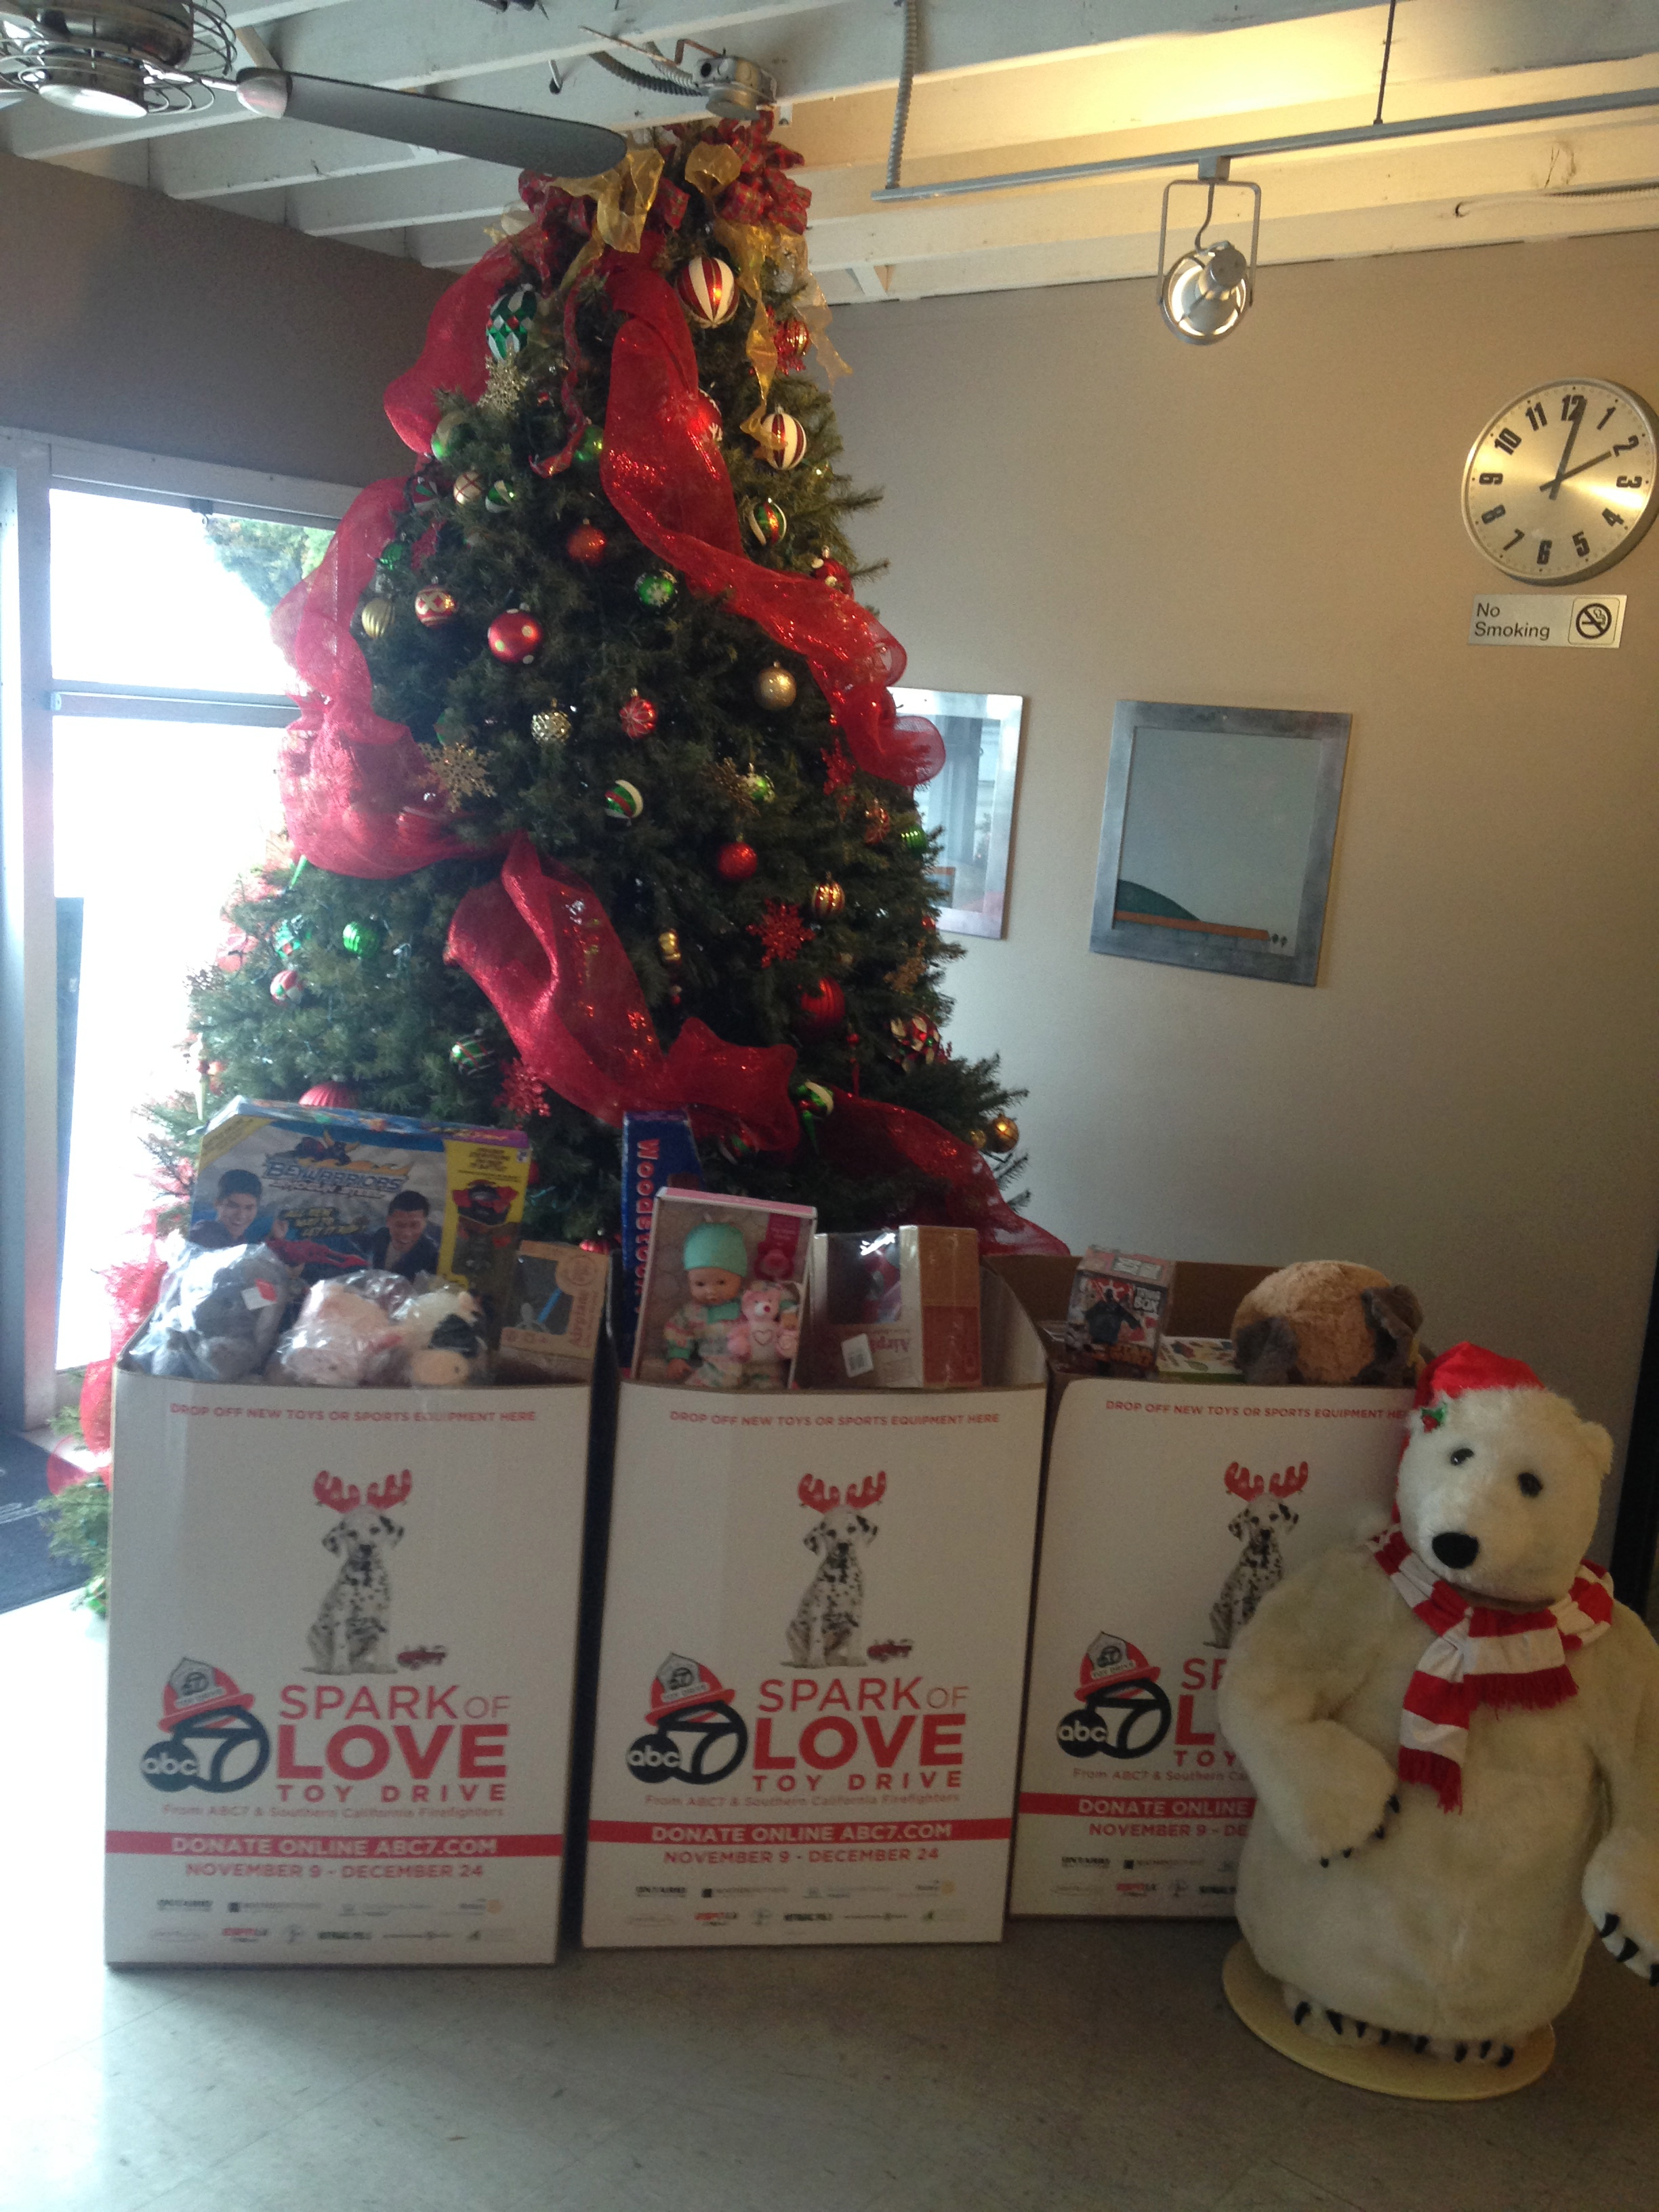 Spark_of_Love_Toy_Drive_Santa_Monica_Airport_12.22.15.jpg